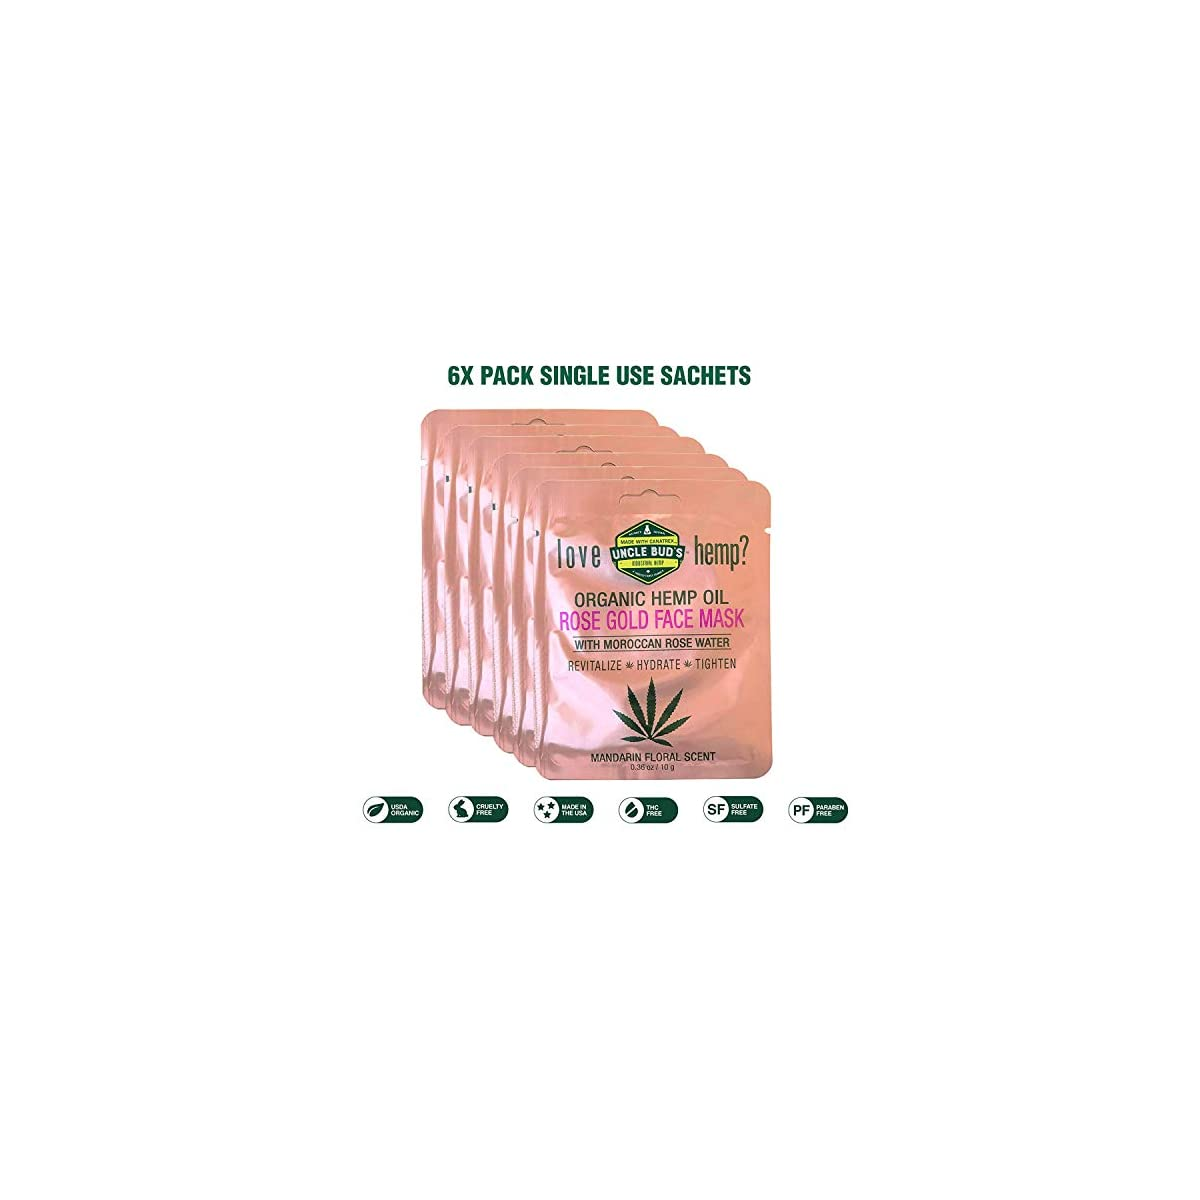 Rose-Gold-Face-Mask-with-Moroccan-Rose-Water-and-Pure-Organic-Hemp-Seed-Oil